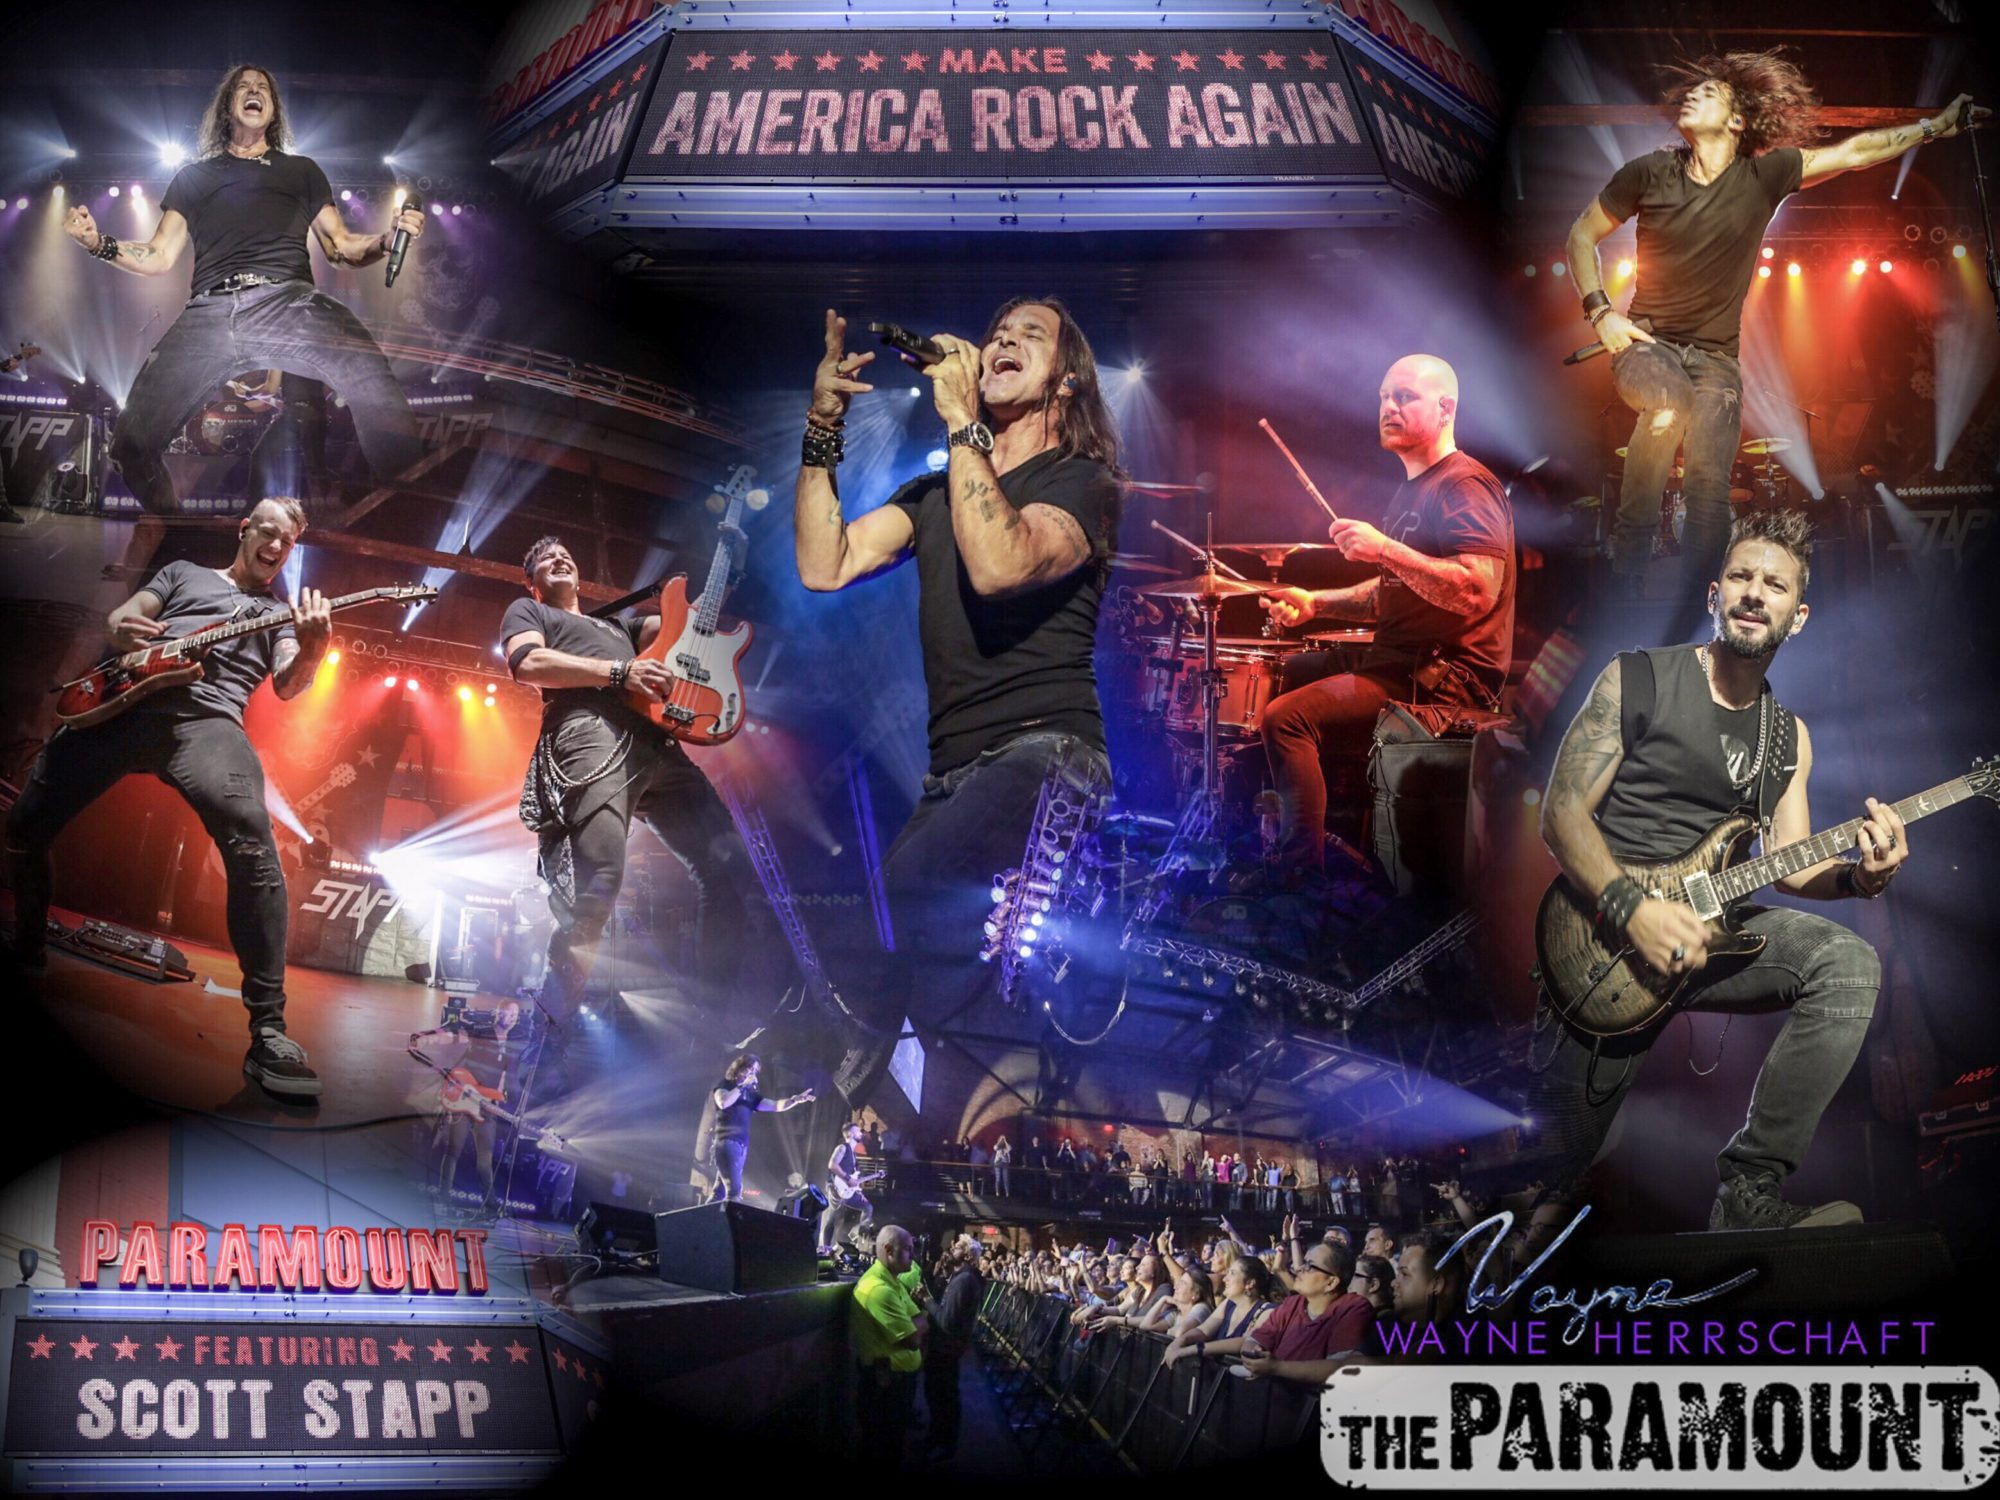 Make america rock again official website for the make america cid15e3c120cd0ae0eb6911 kristyandbryce Images